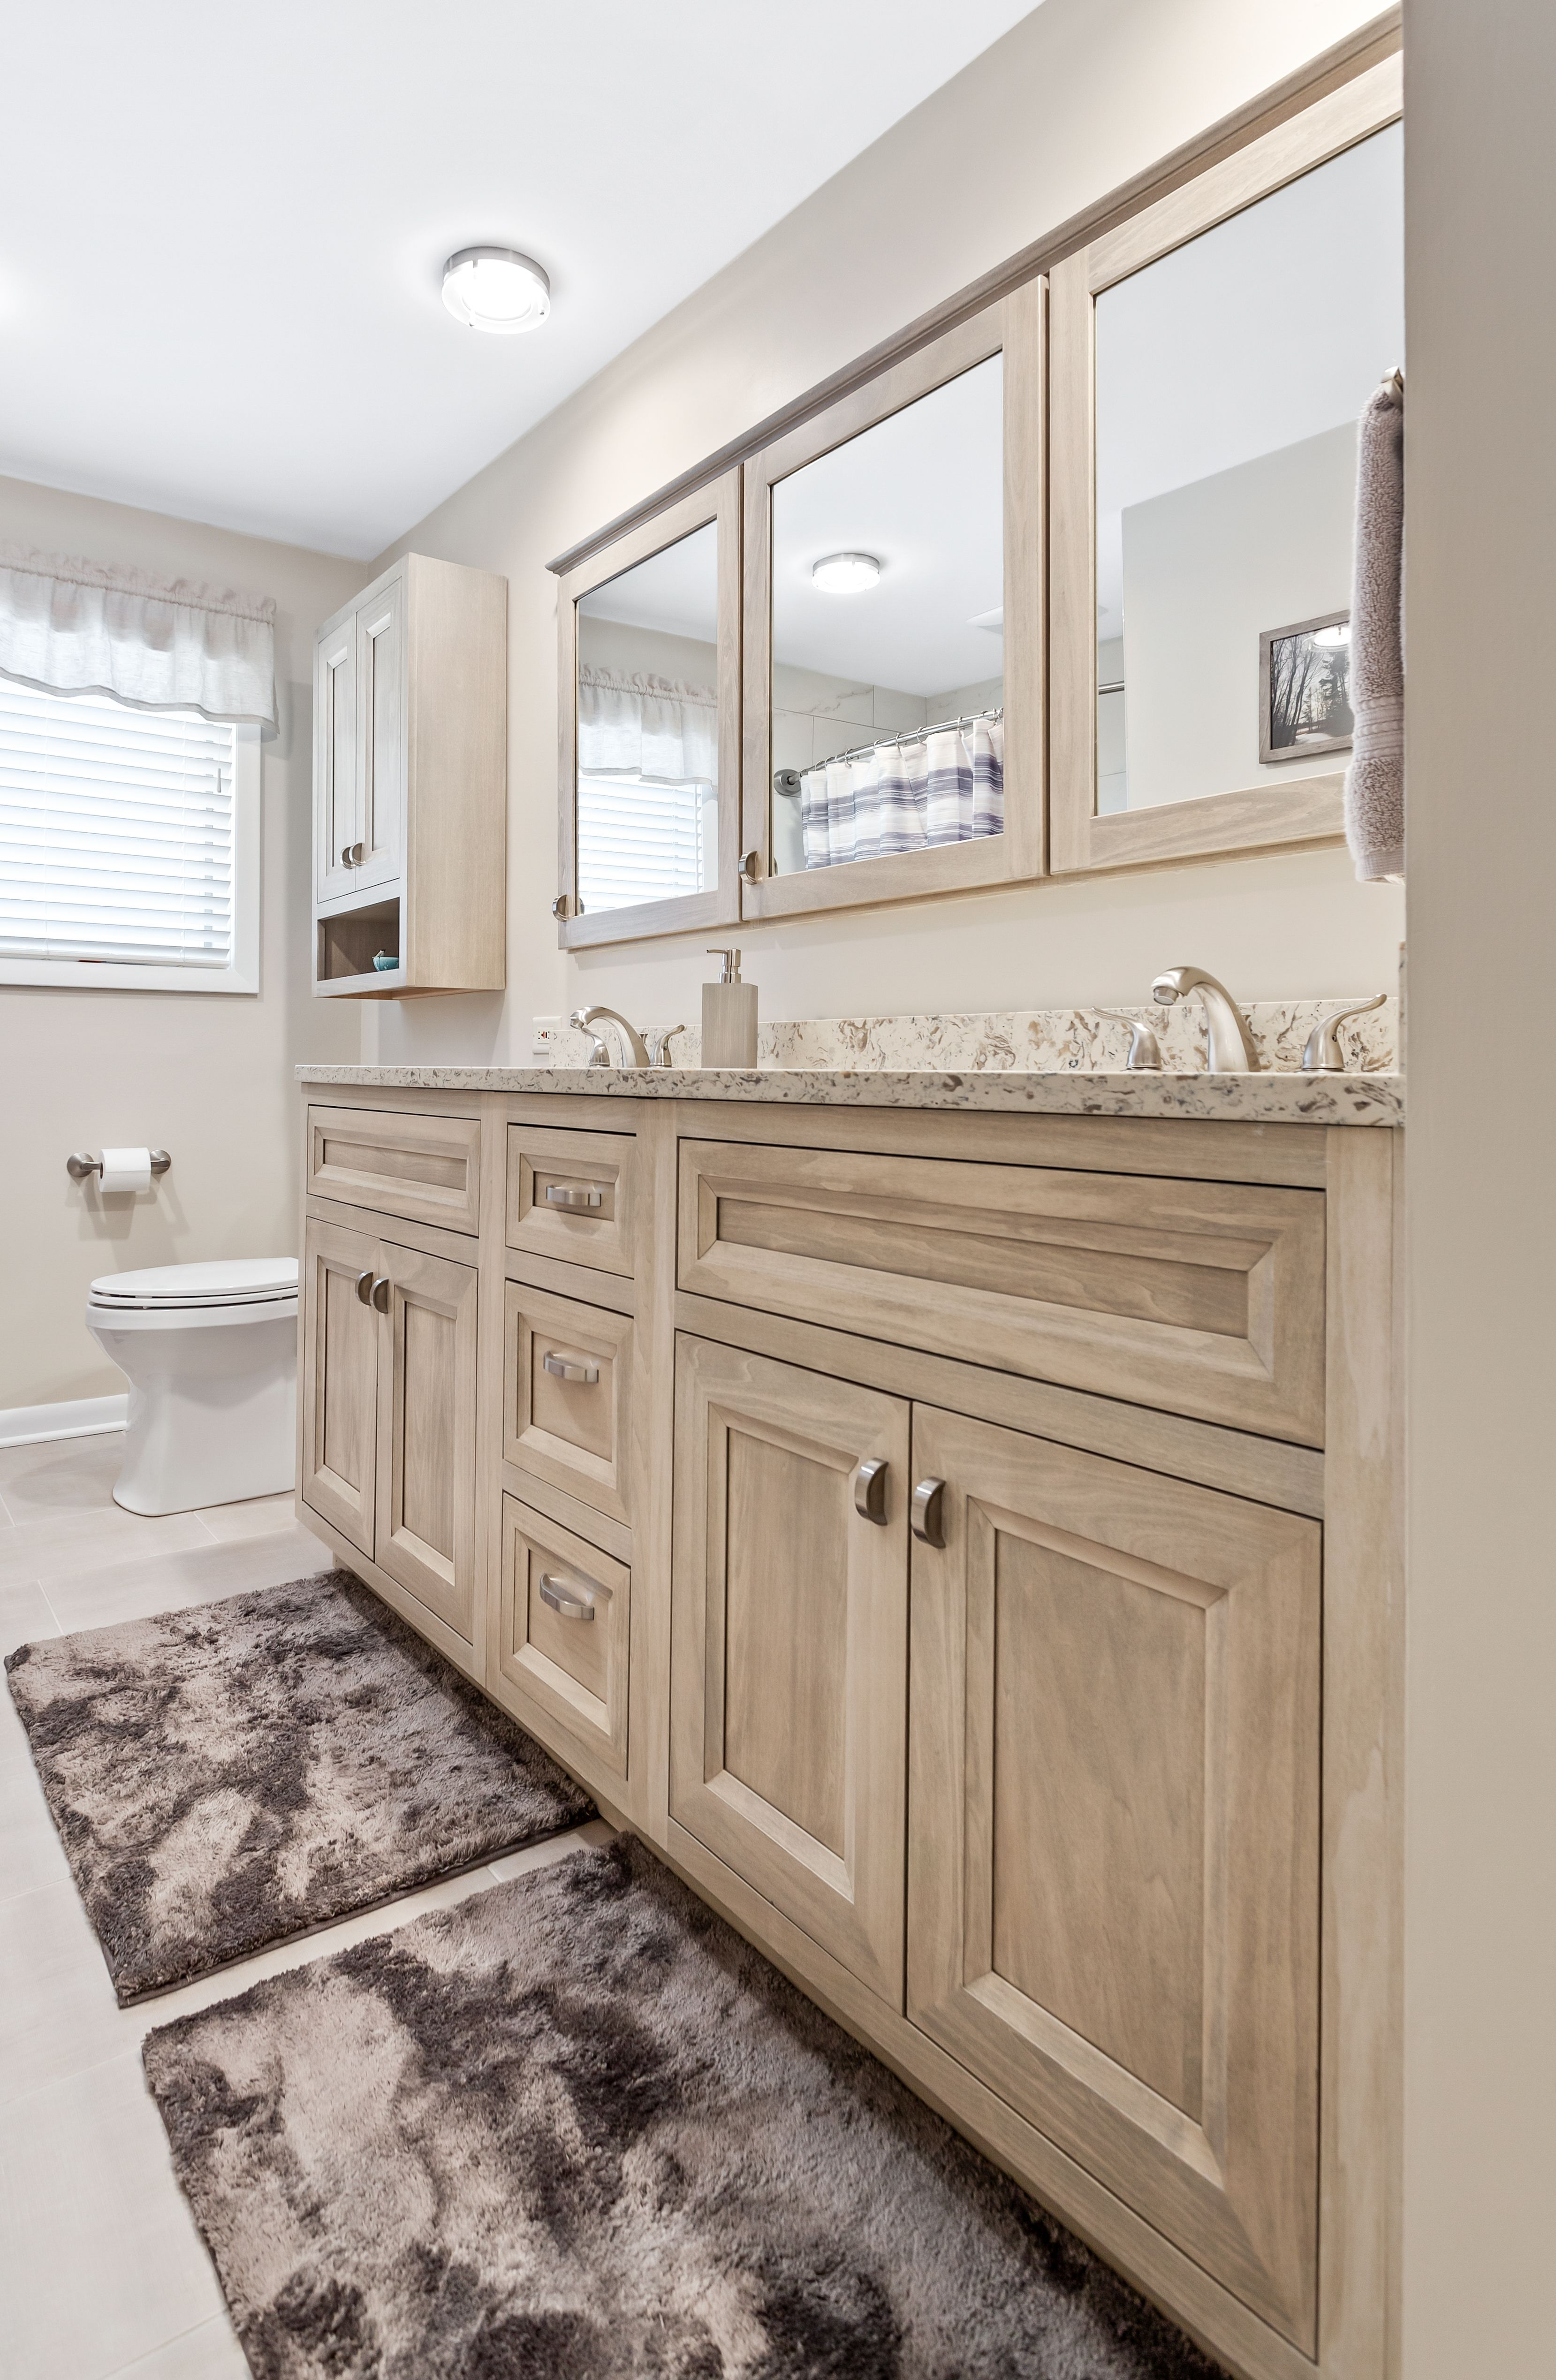 Home Renovations That Give The Highest Return On Investment In 2020 Traditional Bathroom Remodel Traditional Bathroom Bathrooms Remodel